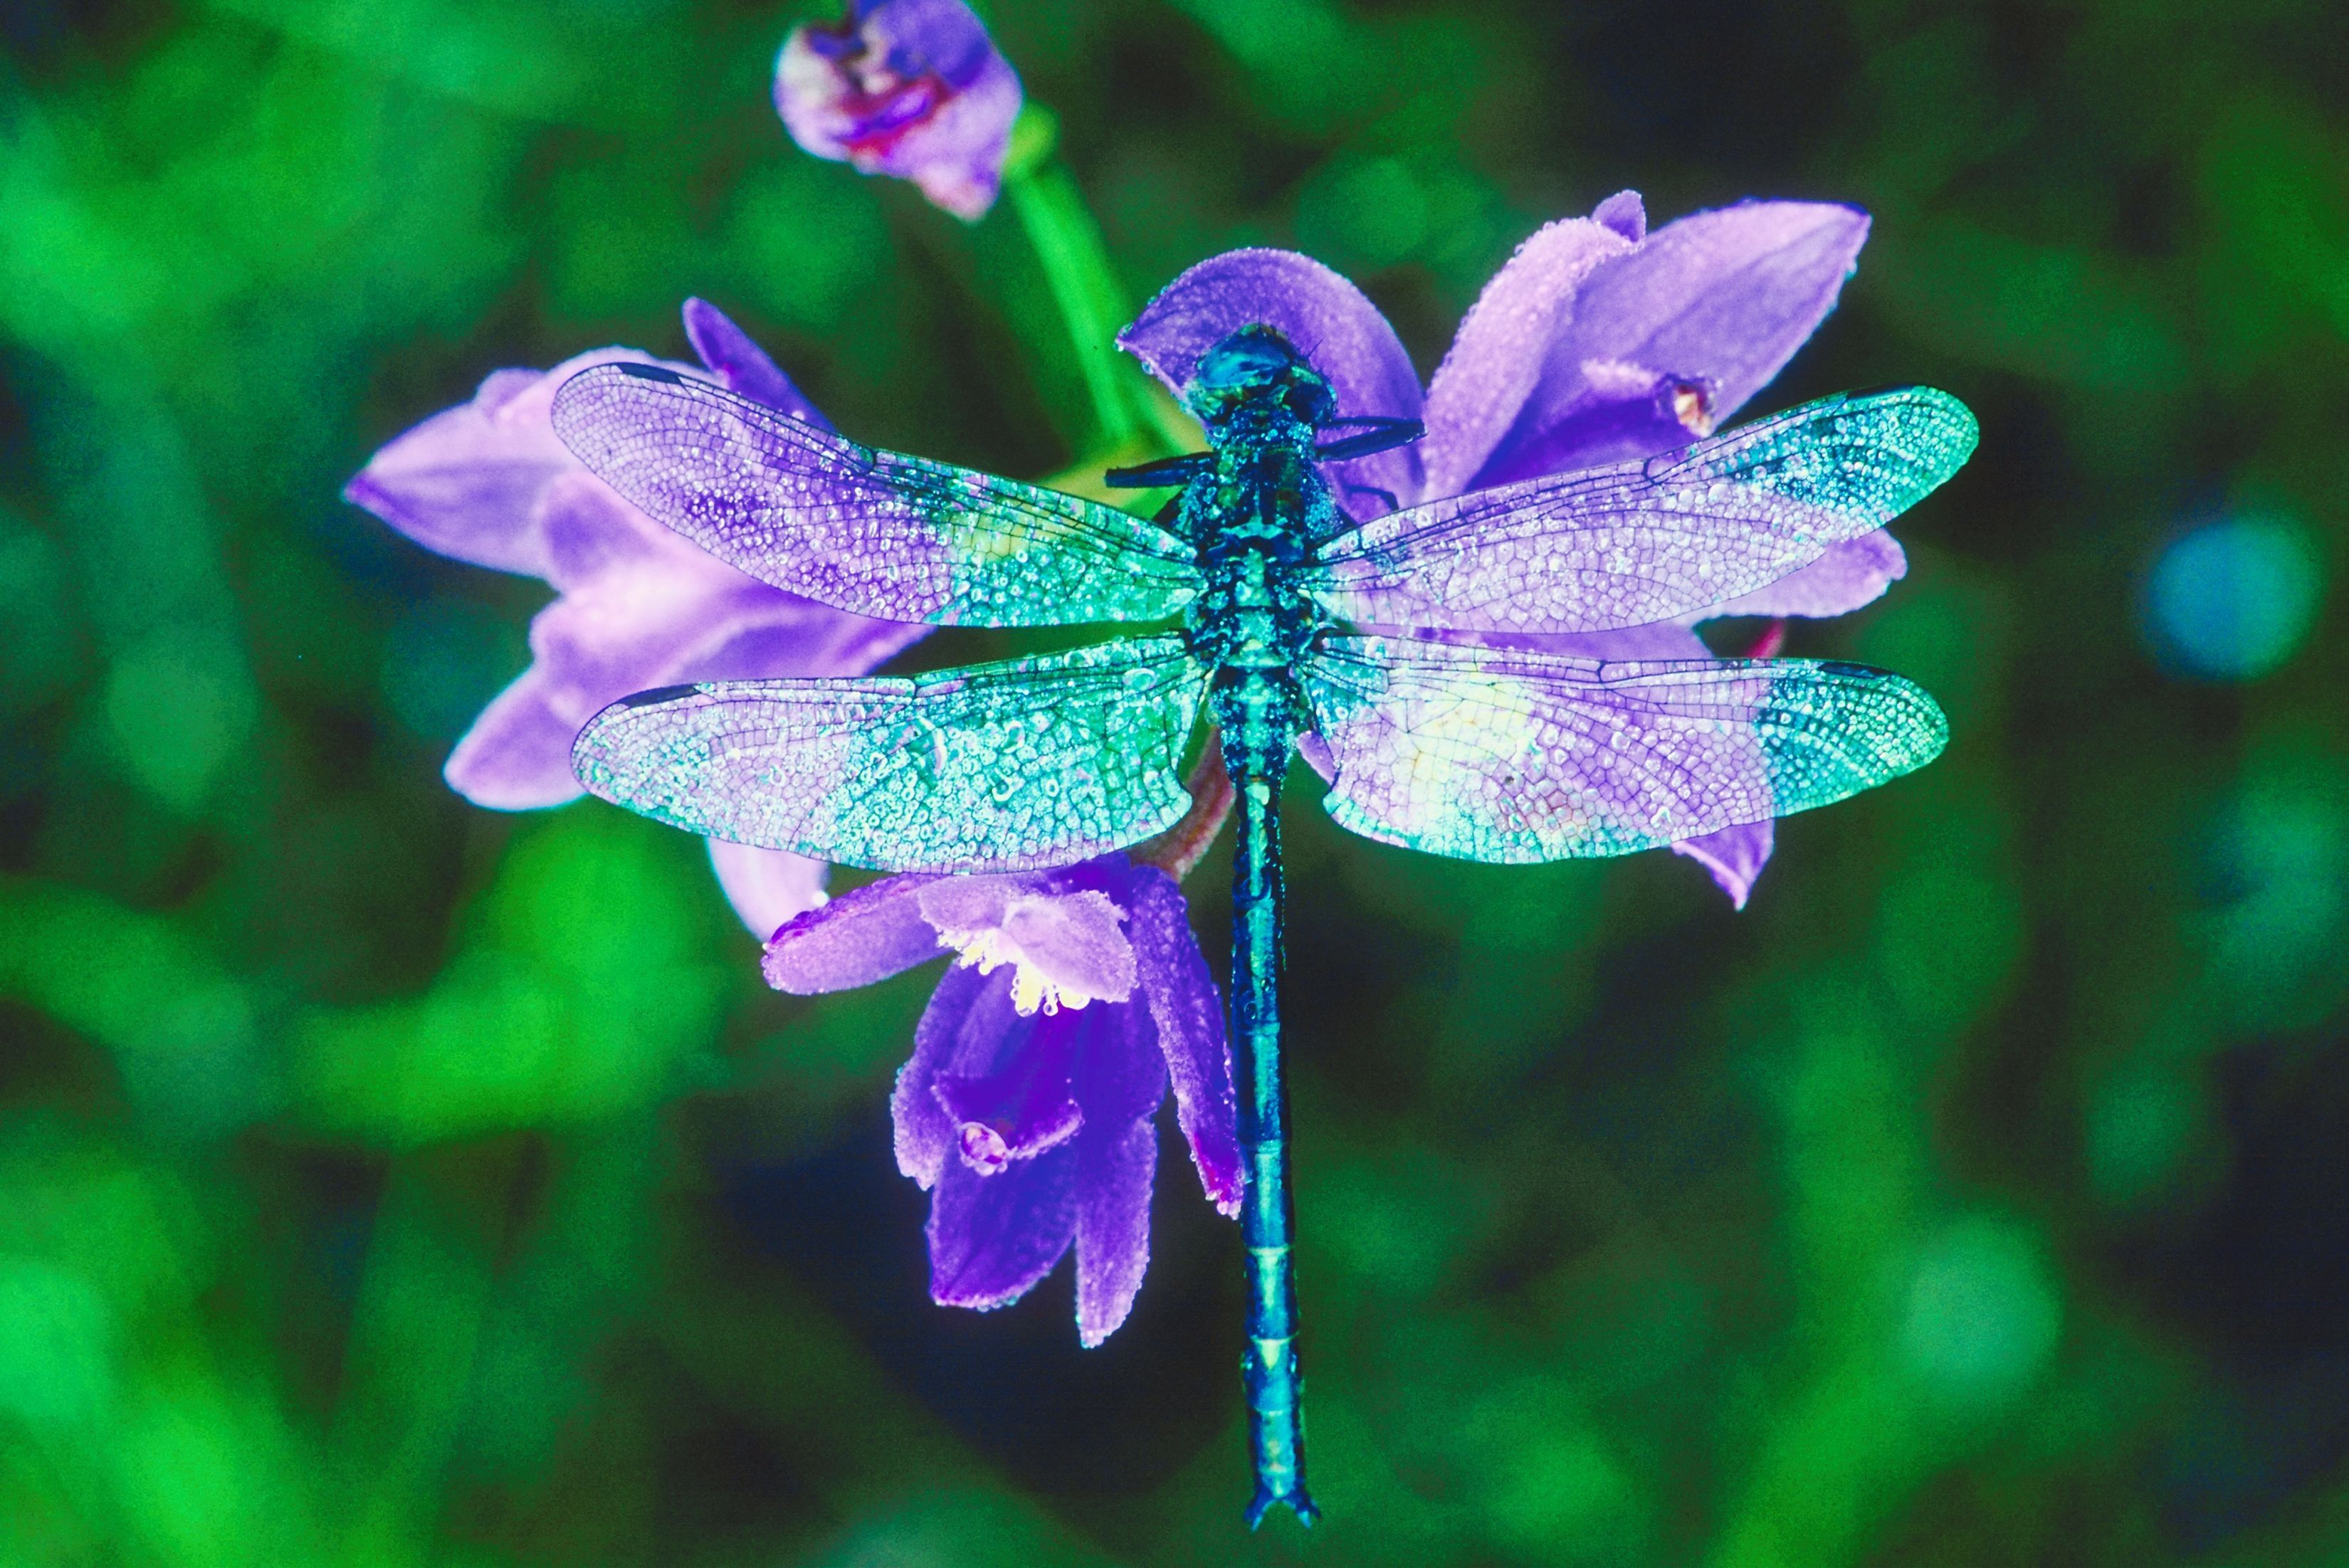 Coloring in dragonflies - Dragonfly Medicine